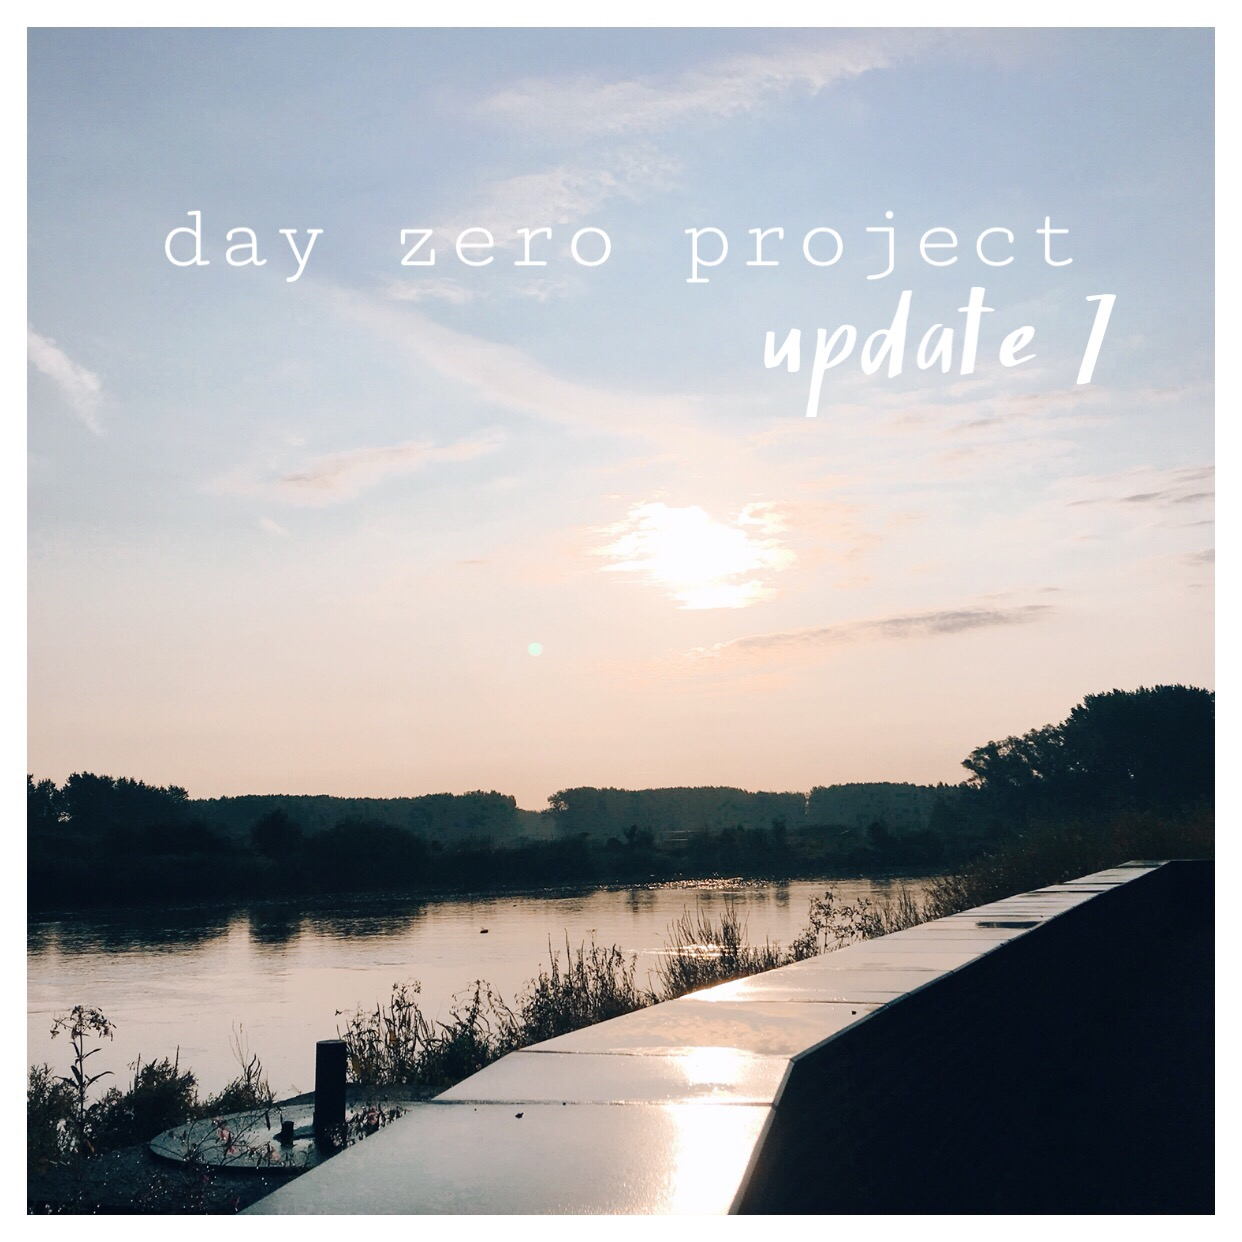 Day zero project | Update 7